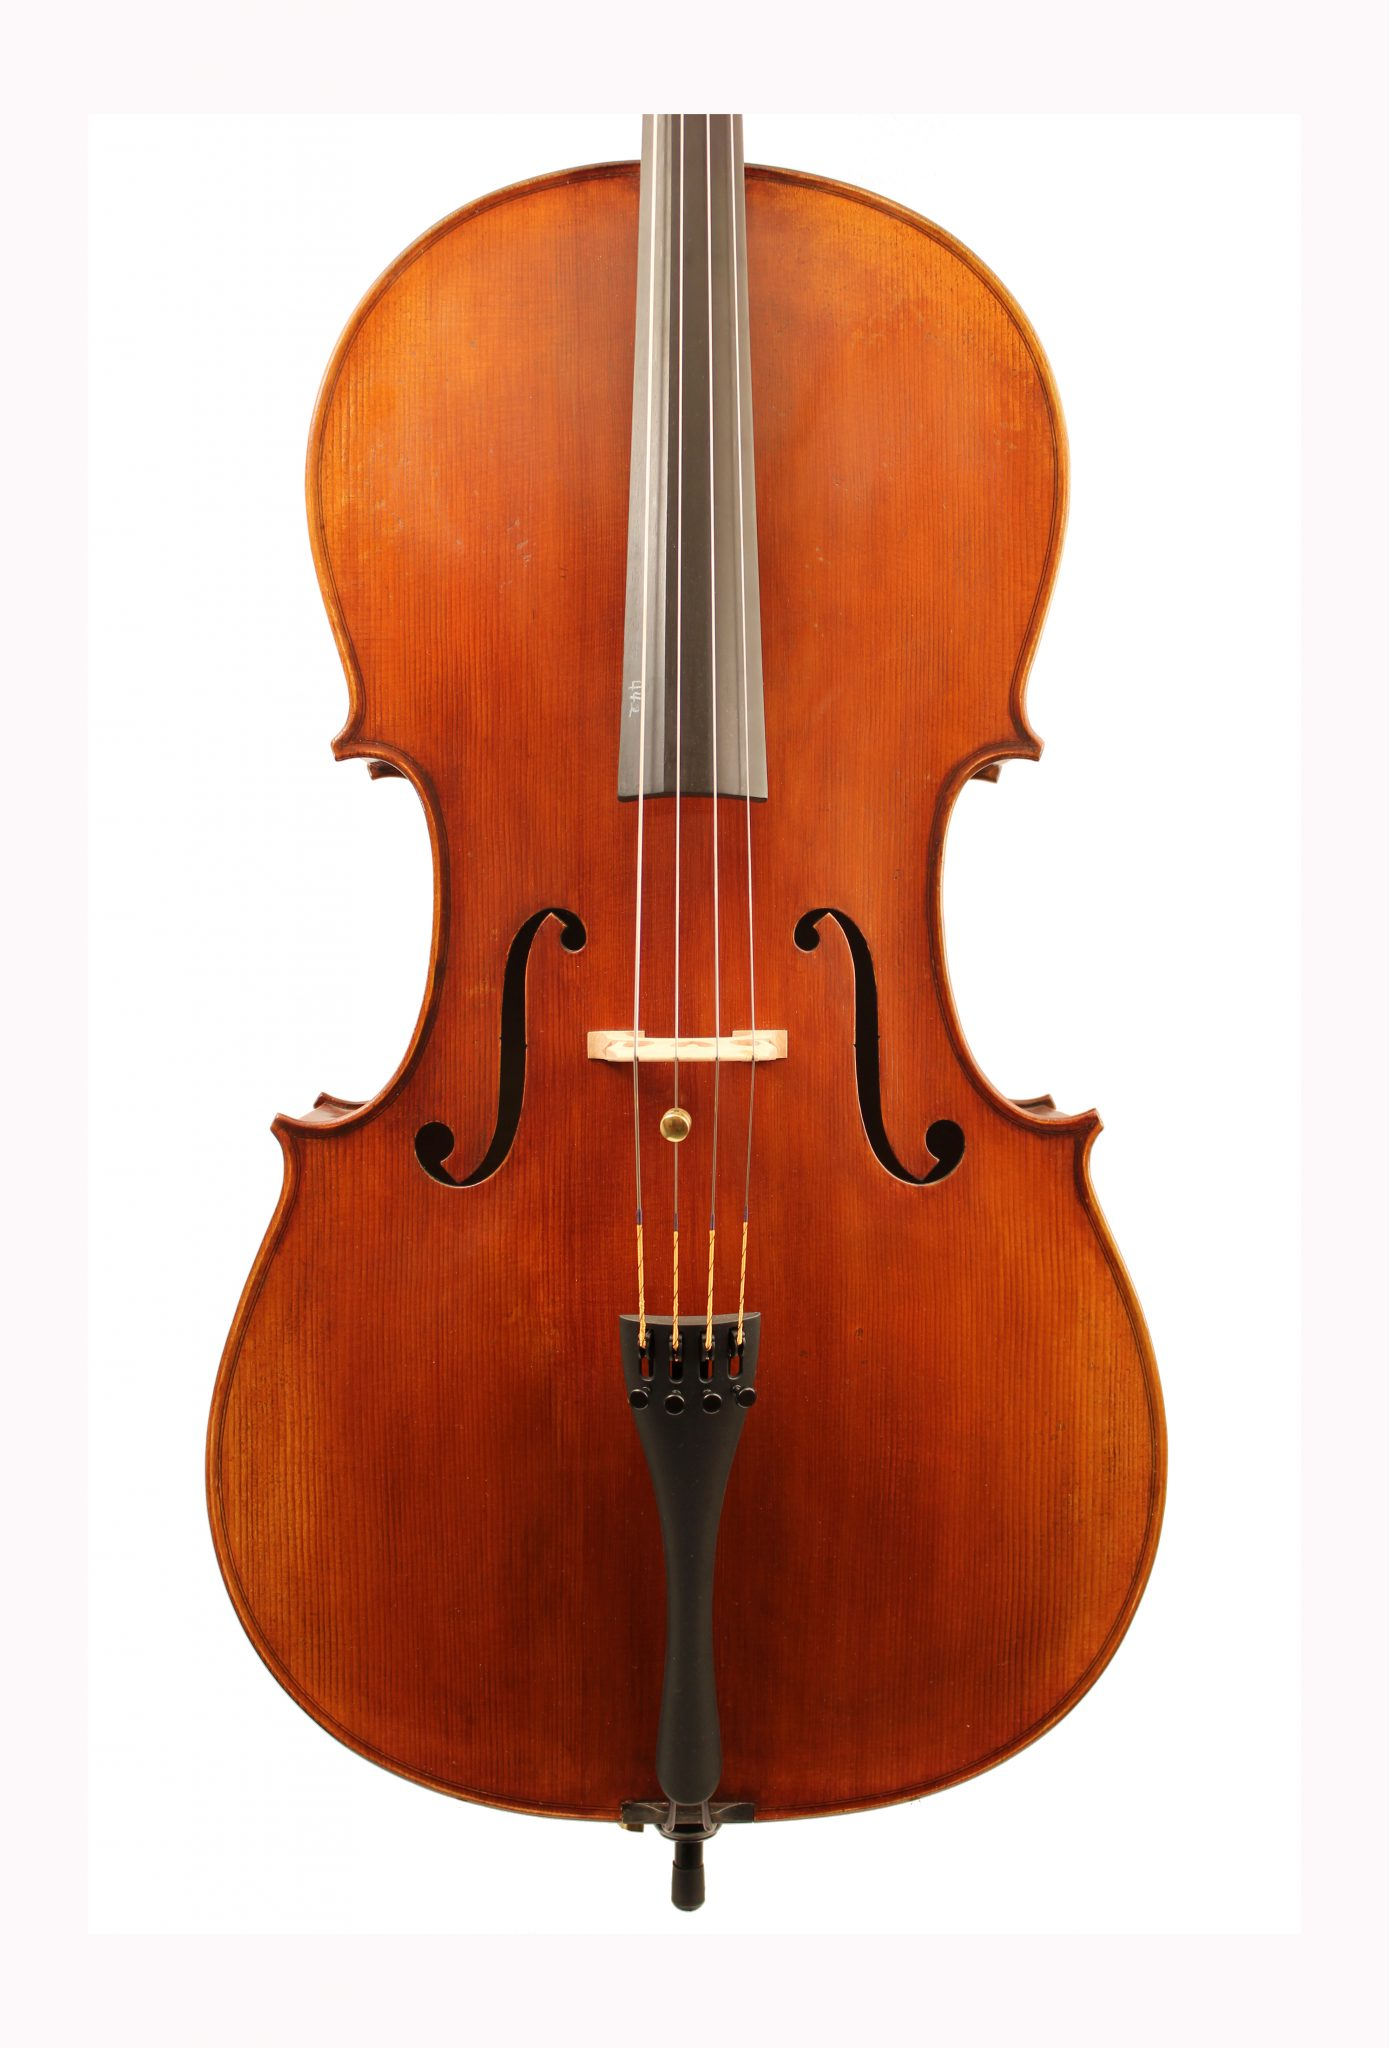 Eastman young master cello  for sale at Bridgewood and Neitzert London